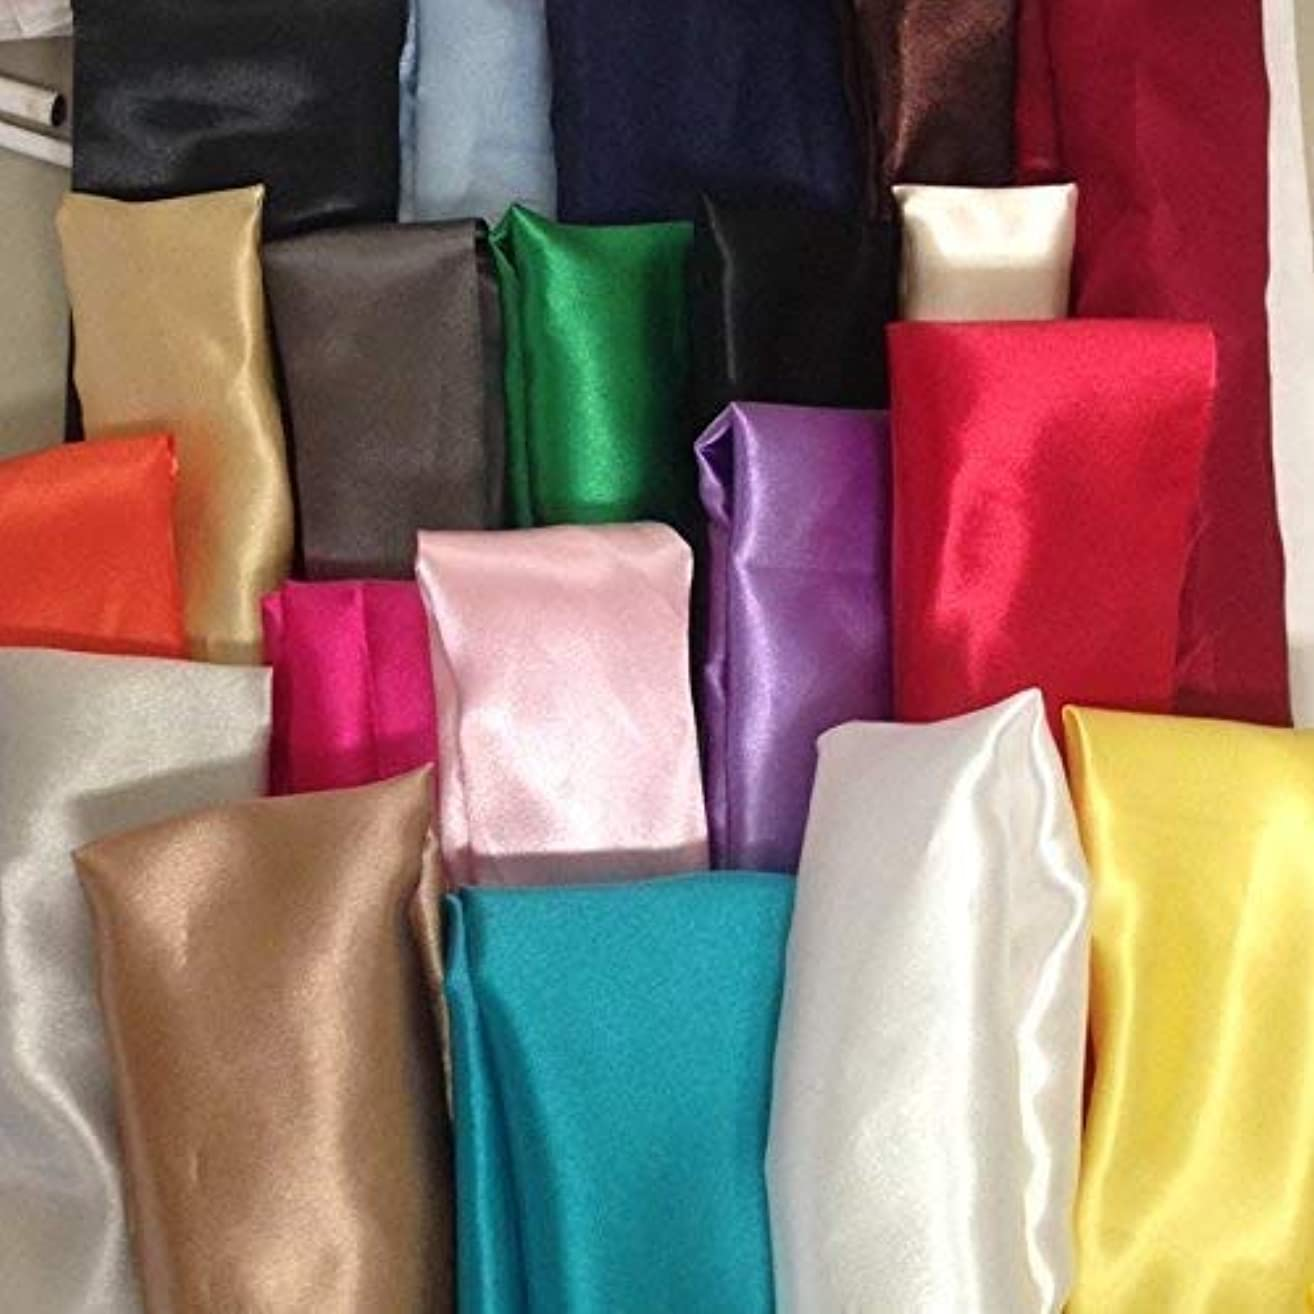 Cord Cover Satin Handmade Variety of Colors Lengths up to 20 Feet and Widths up to 3-1/2 Inches